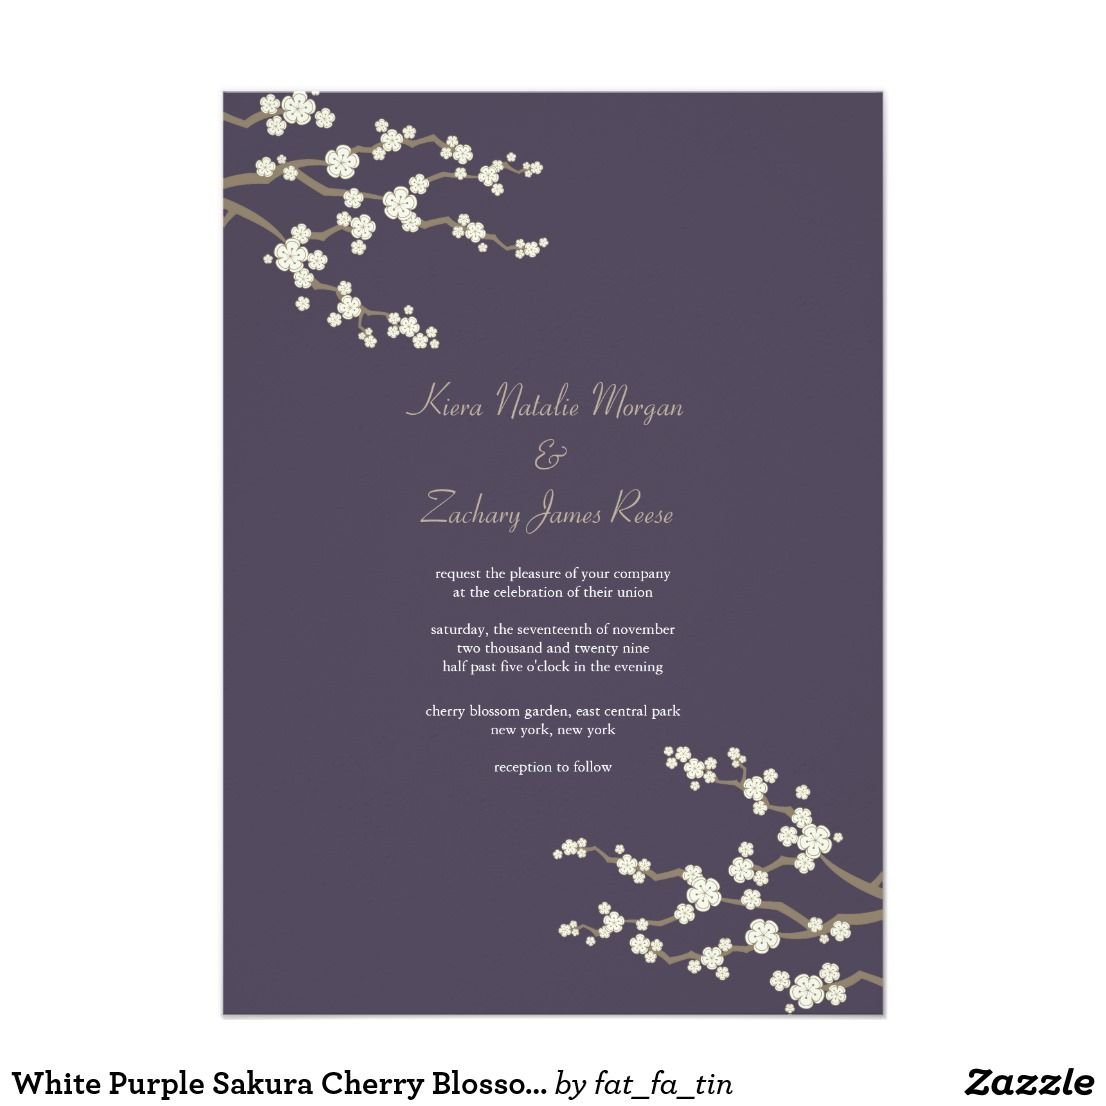 White Purple Sakura Cherry Blossoms Wedding Invite Invites Wedding